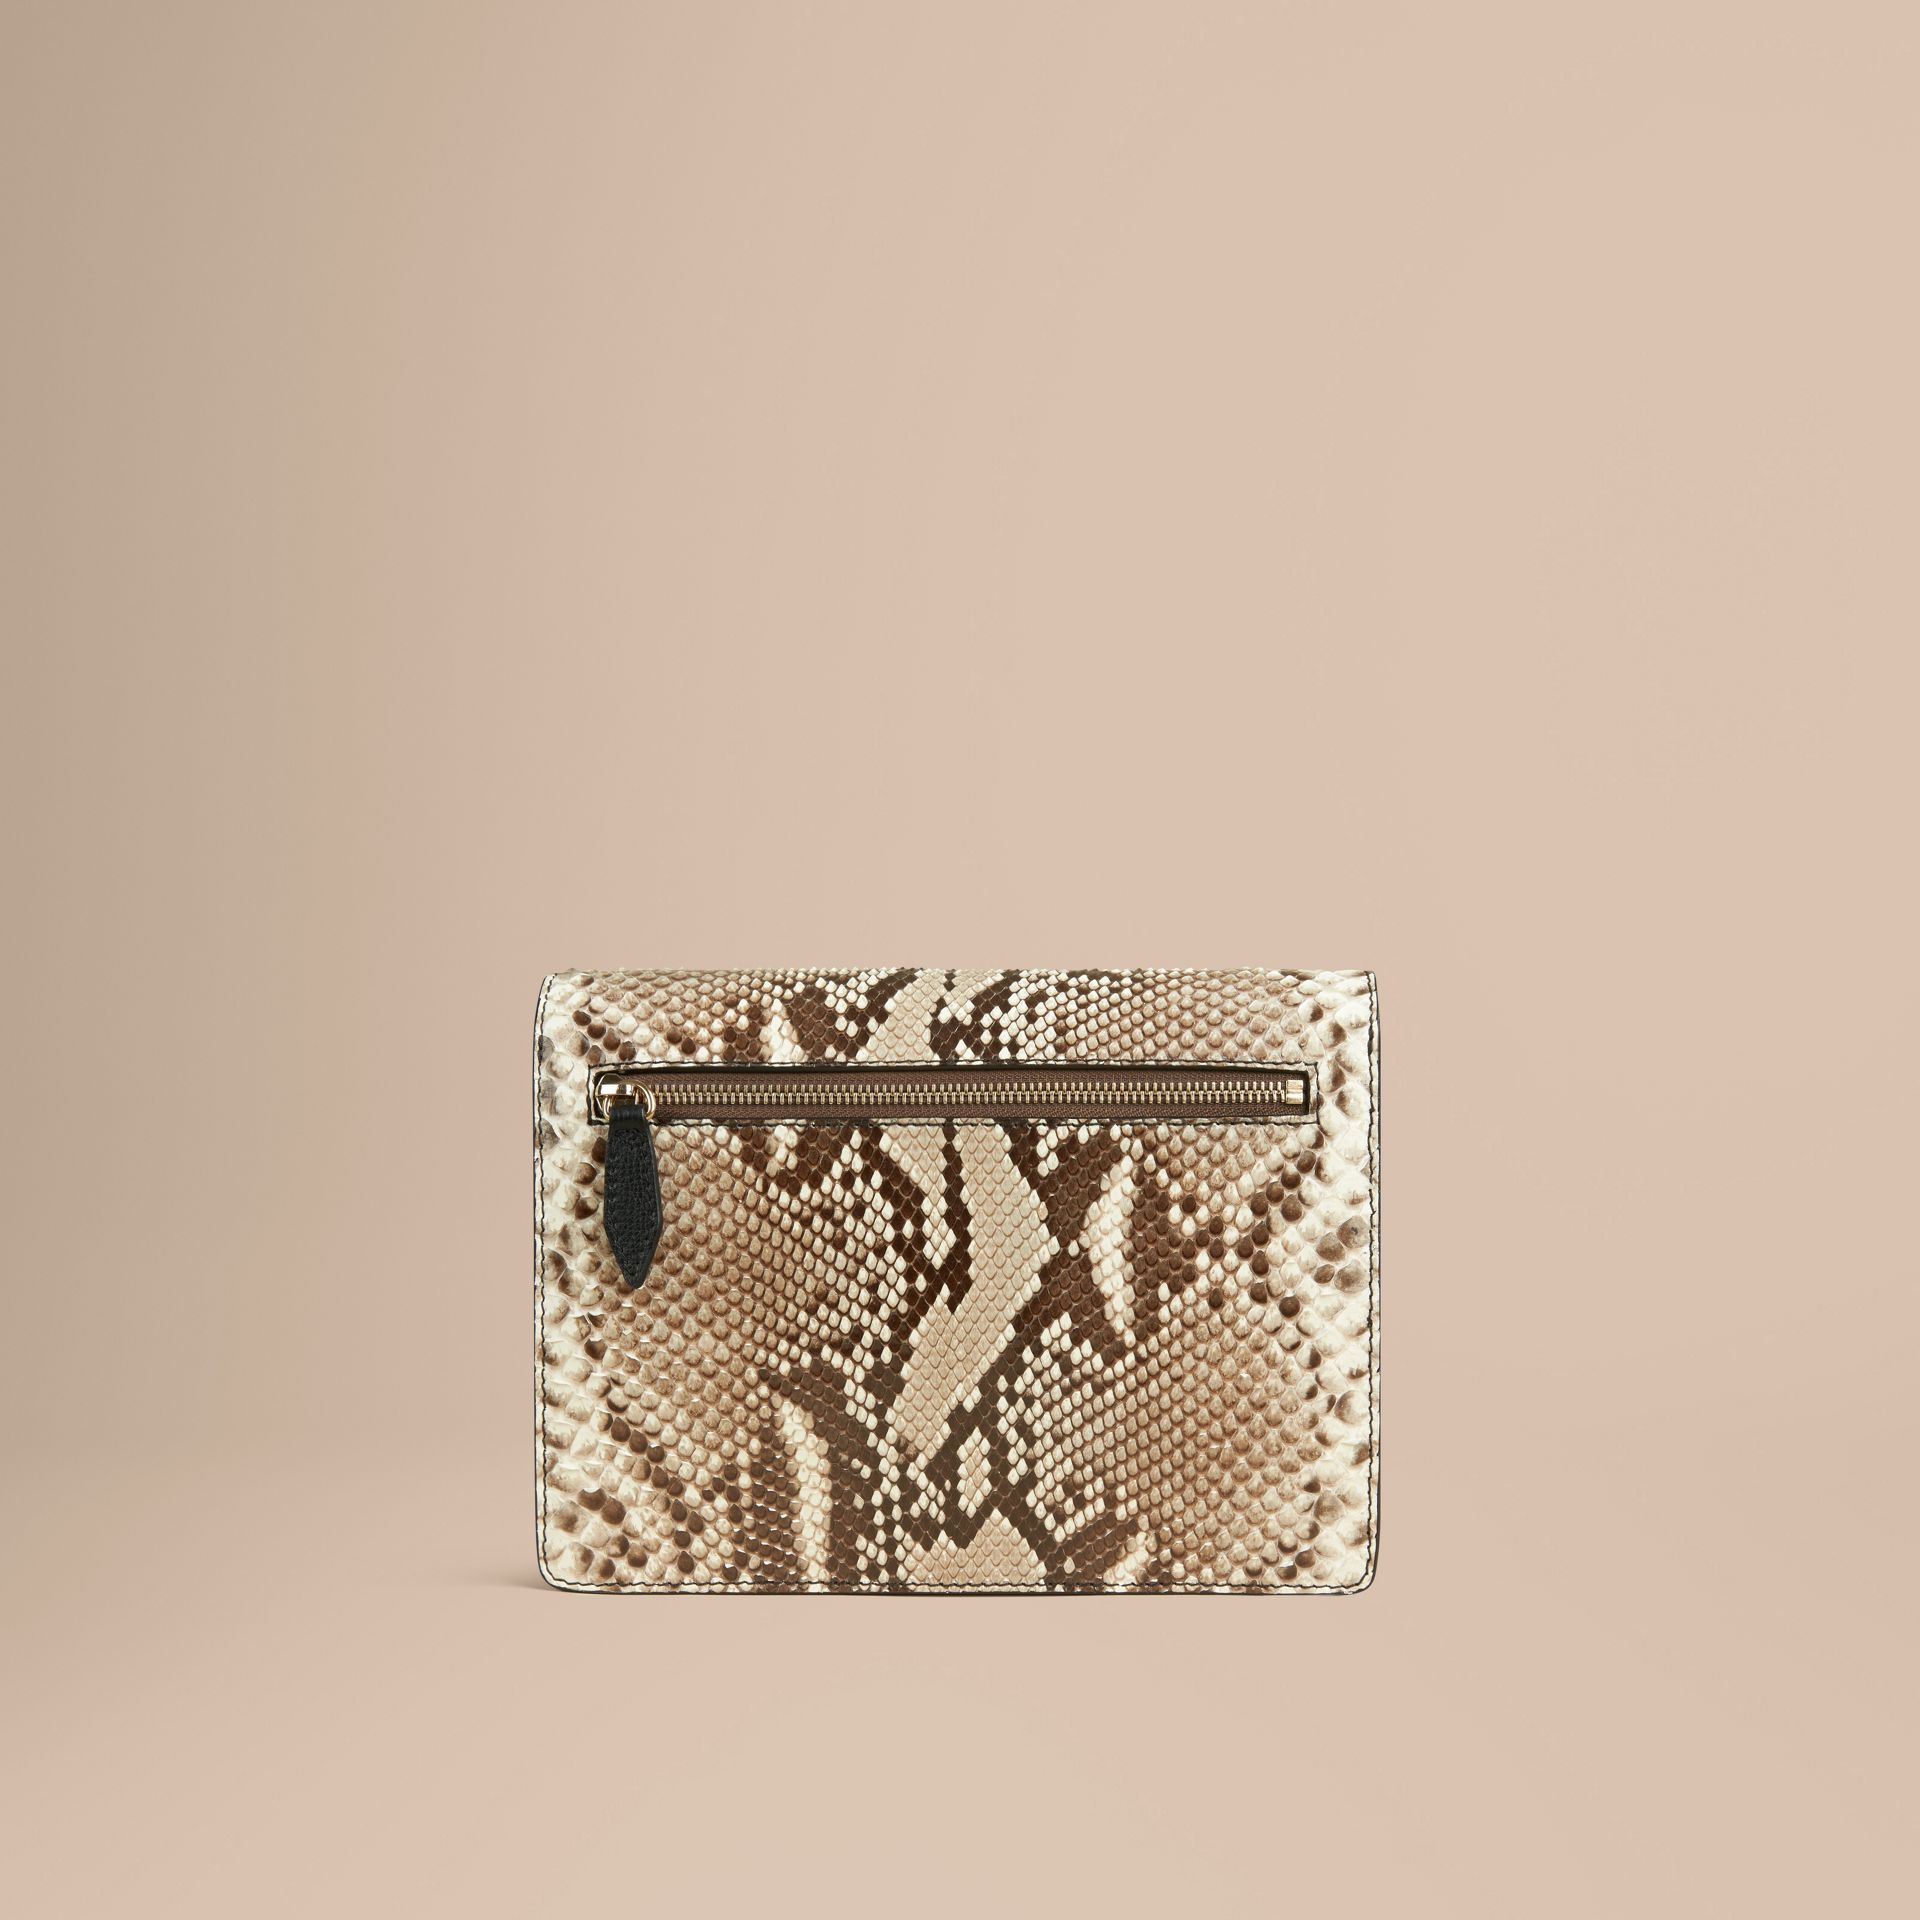 Small Python Crossbody Bag in Natural - Women | Burberry United Kingdom - gallery image 3